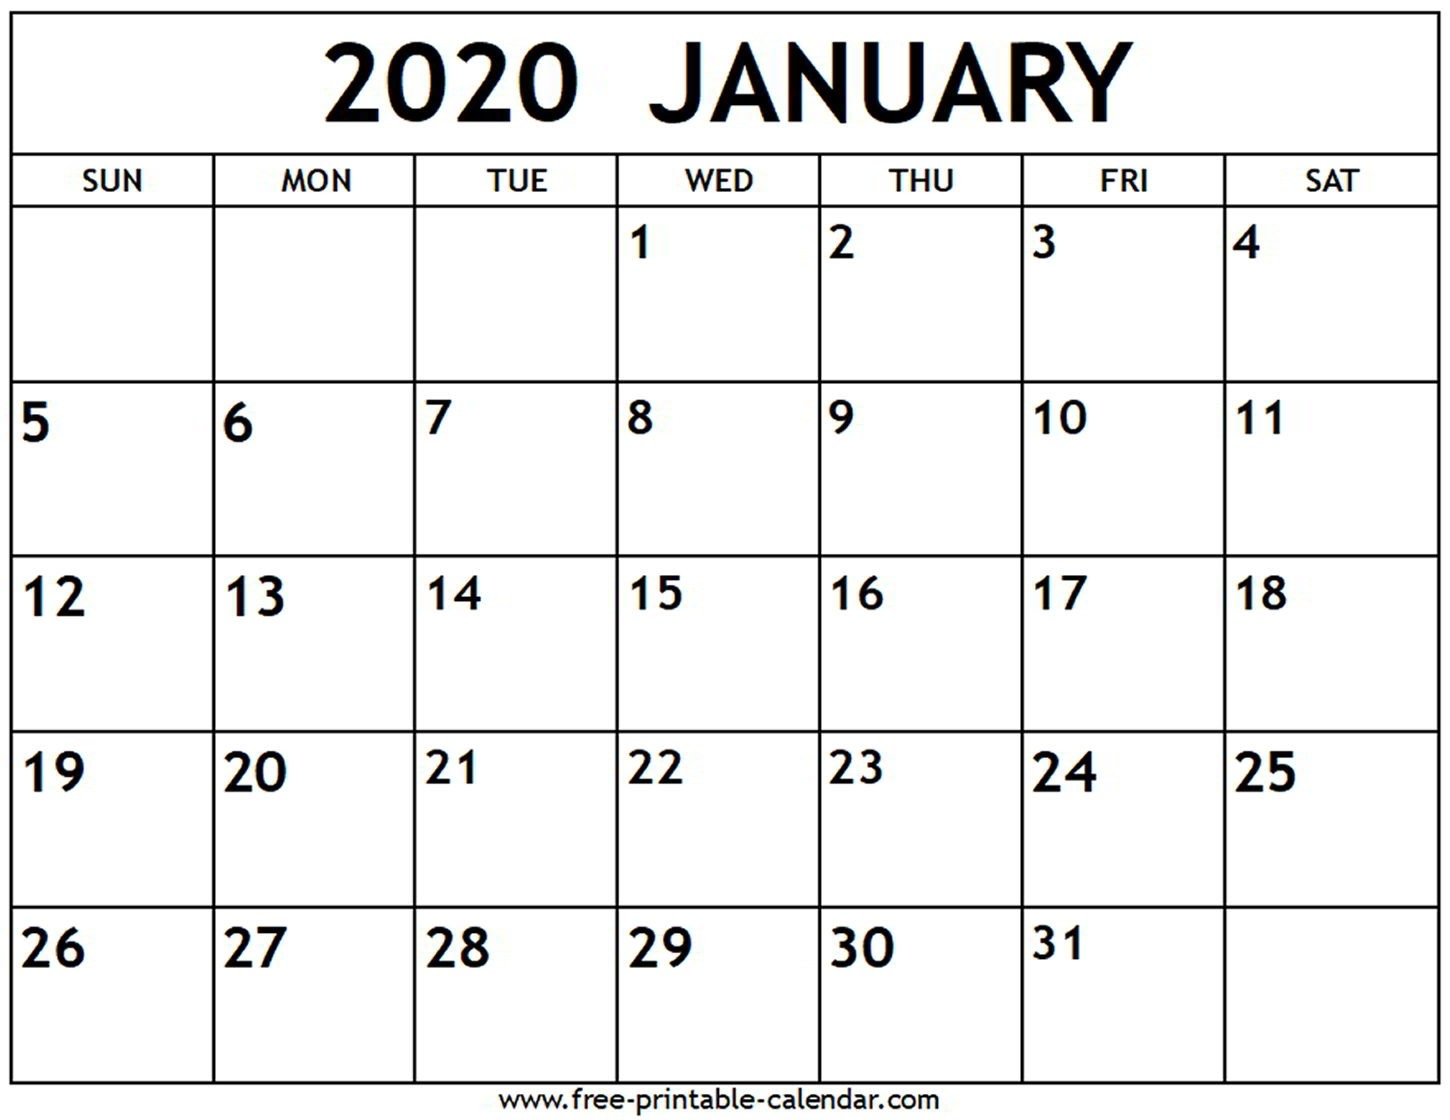 January 2020 Calendar - Free-Printable-Calendar-January 2020 Calendar Dates